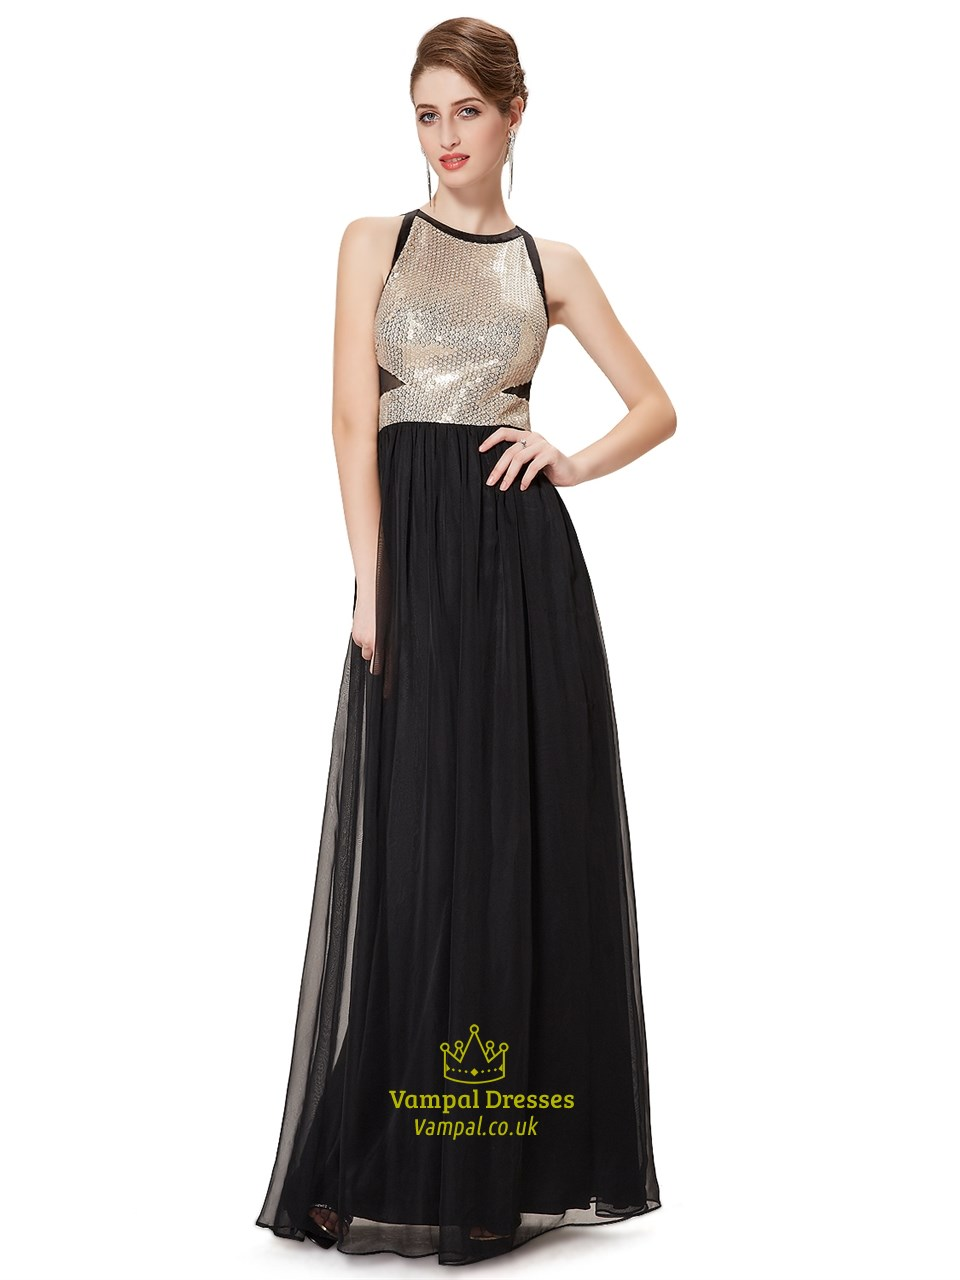 a286caf06bd3 Elegant Black Chiffon Floor Length Prom Dress With Sequin Bodice SKU -NW1473